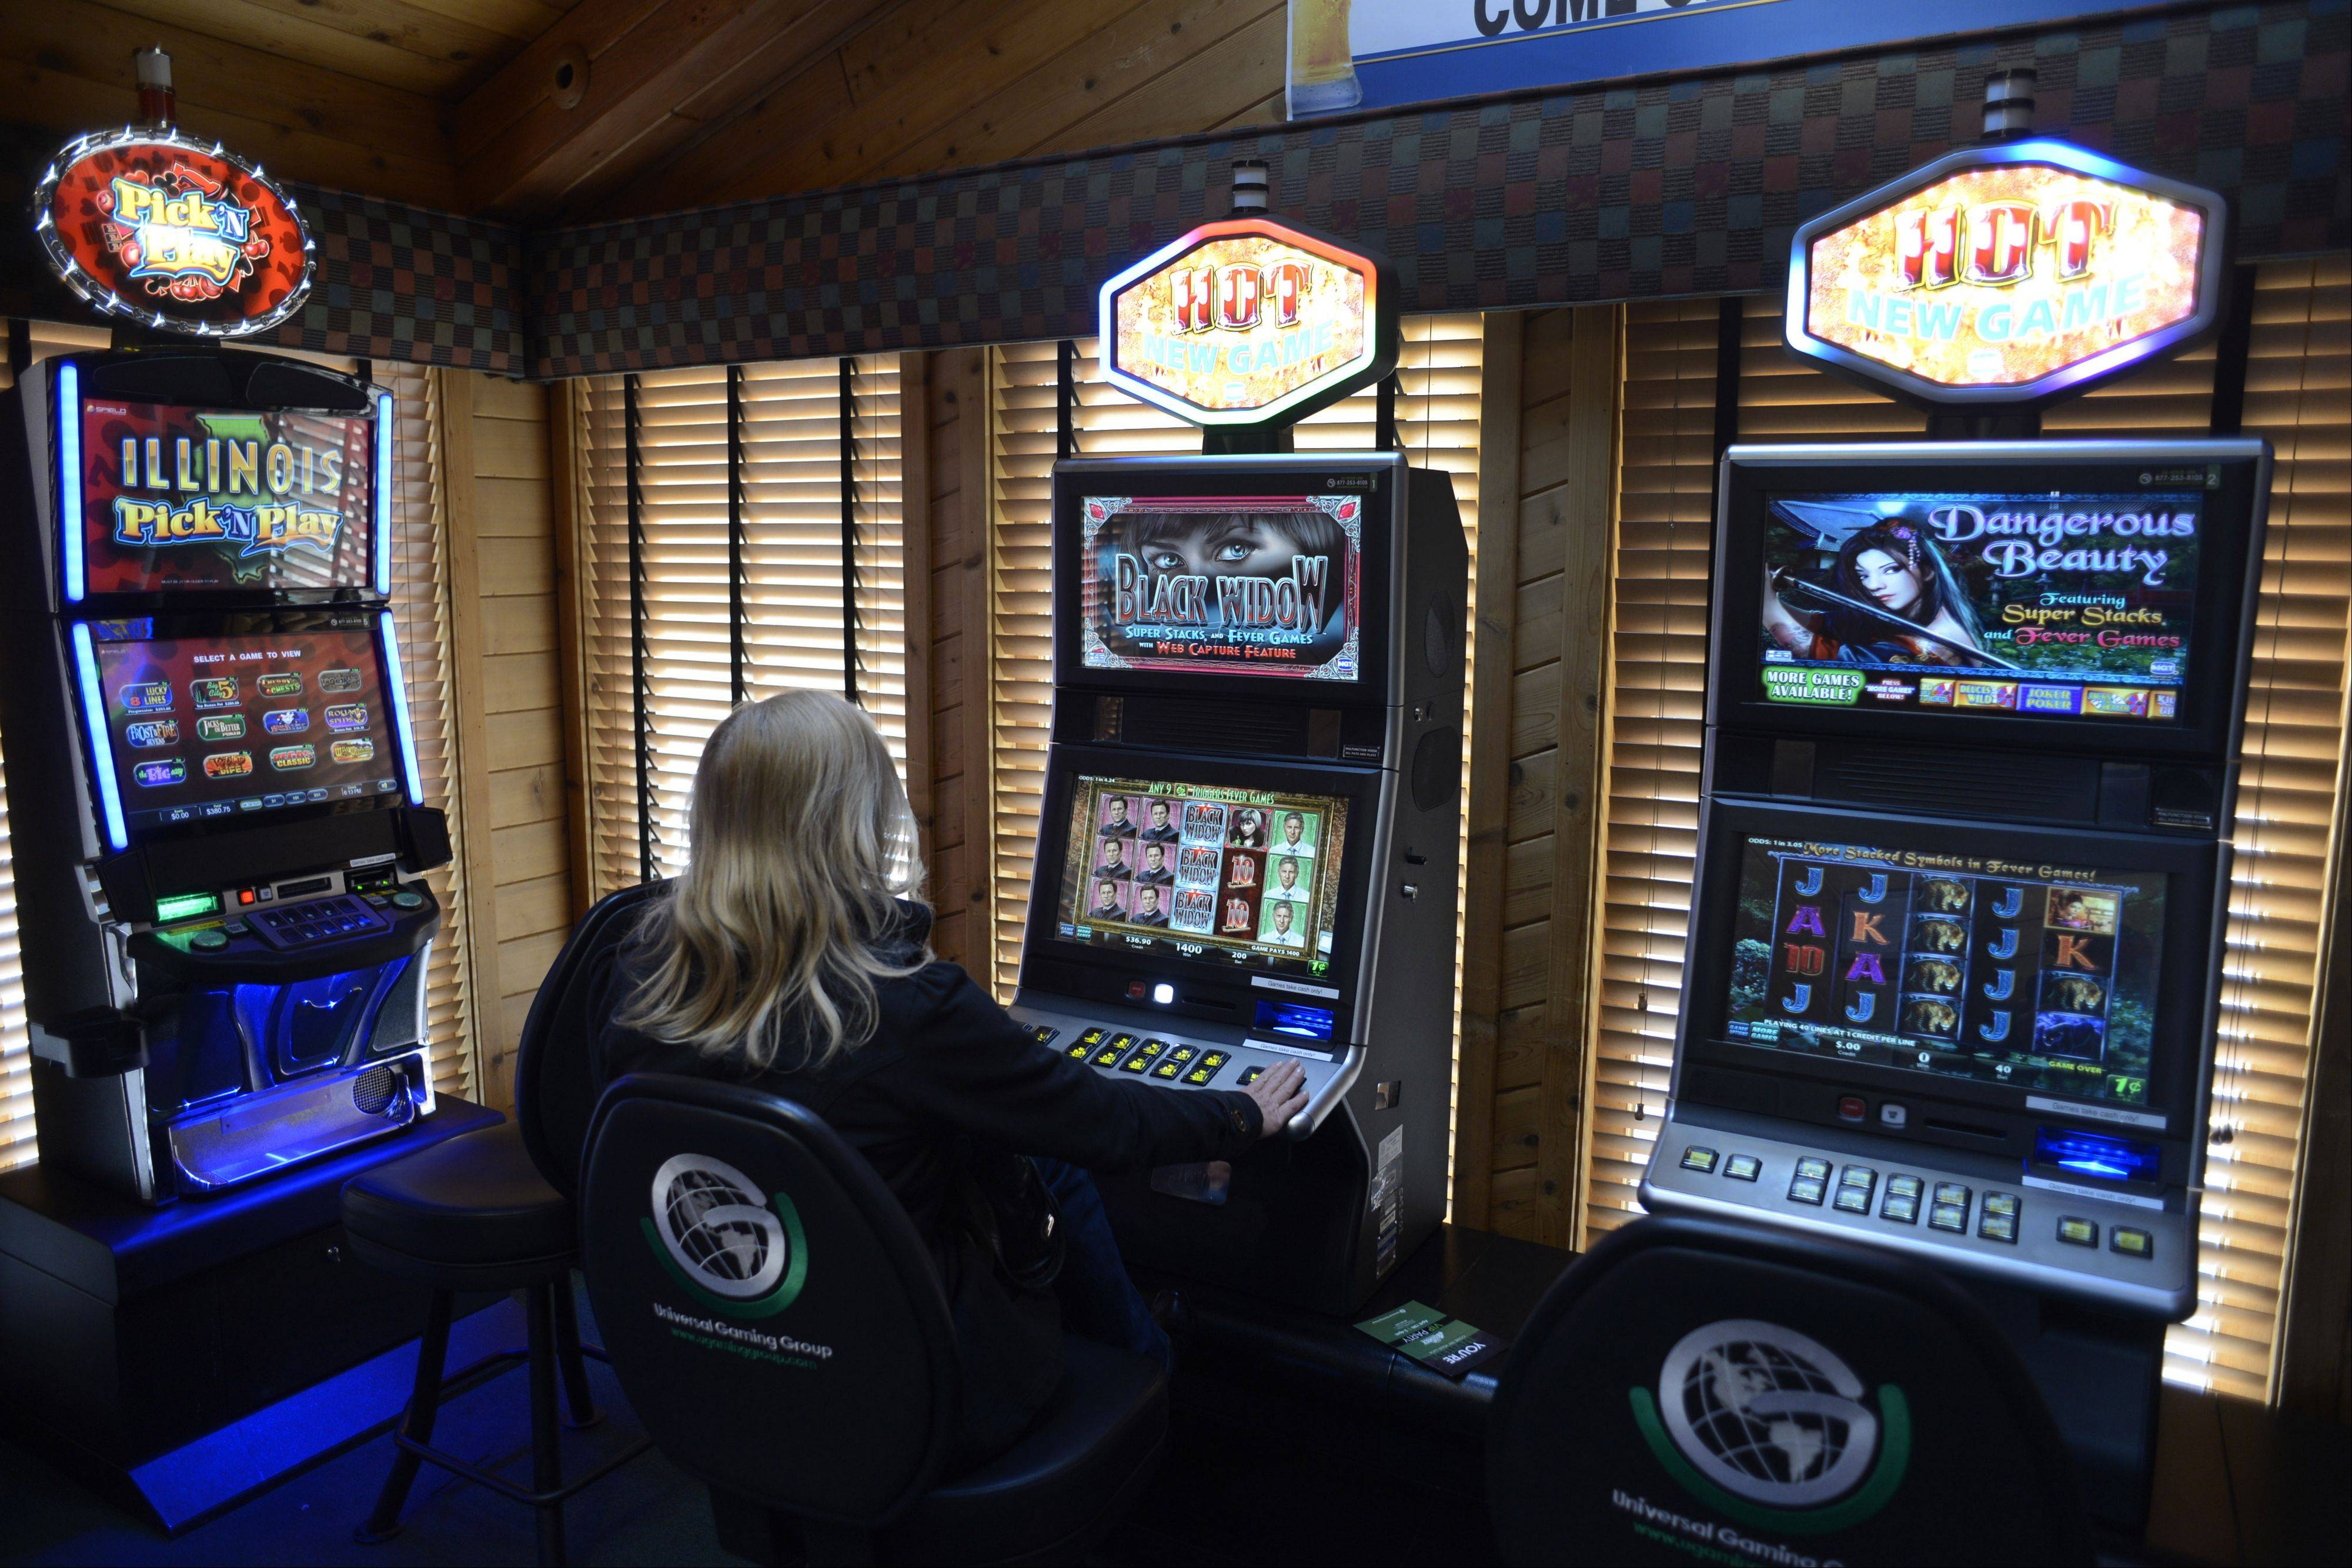 Barrington businesses asking for video gambling